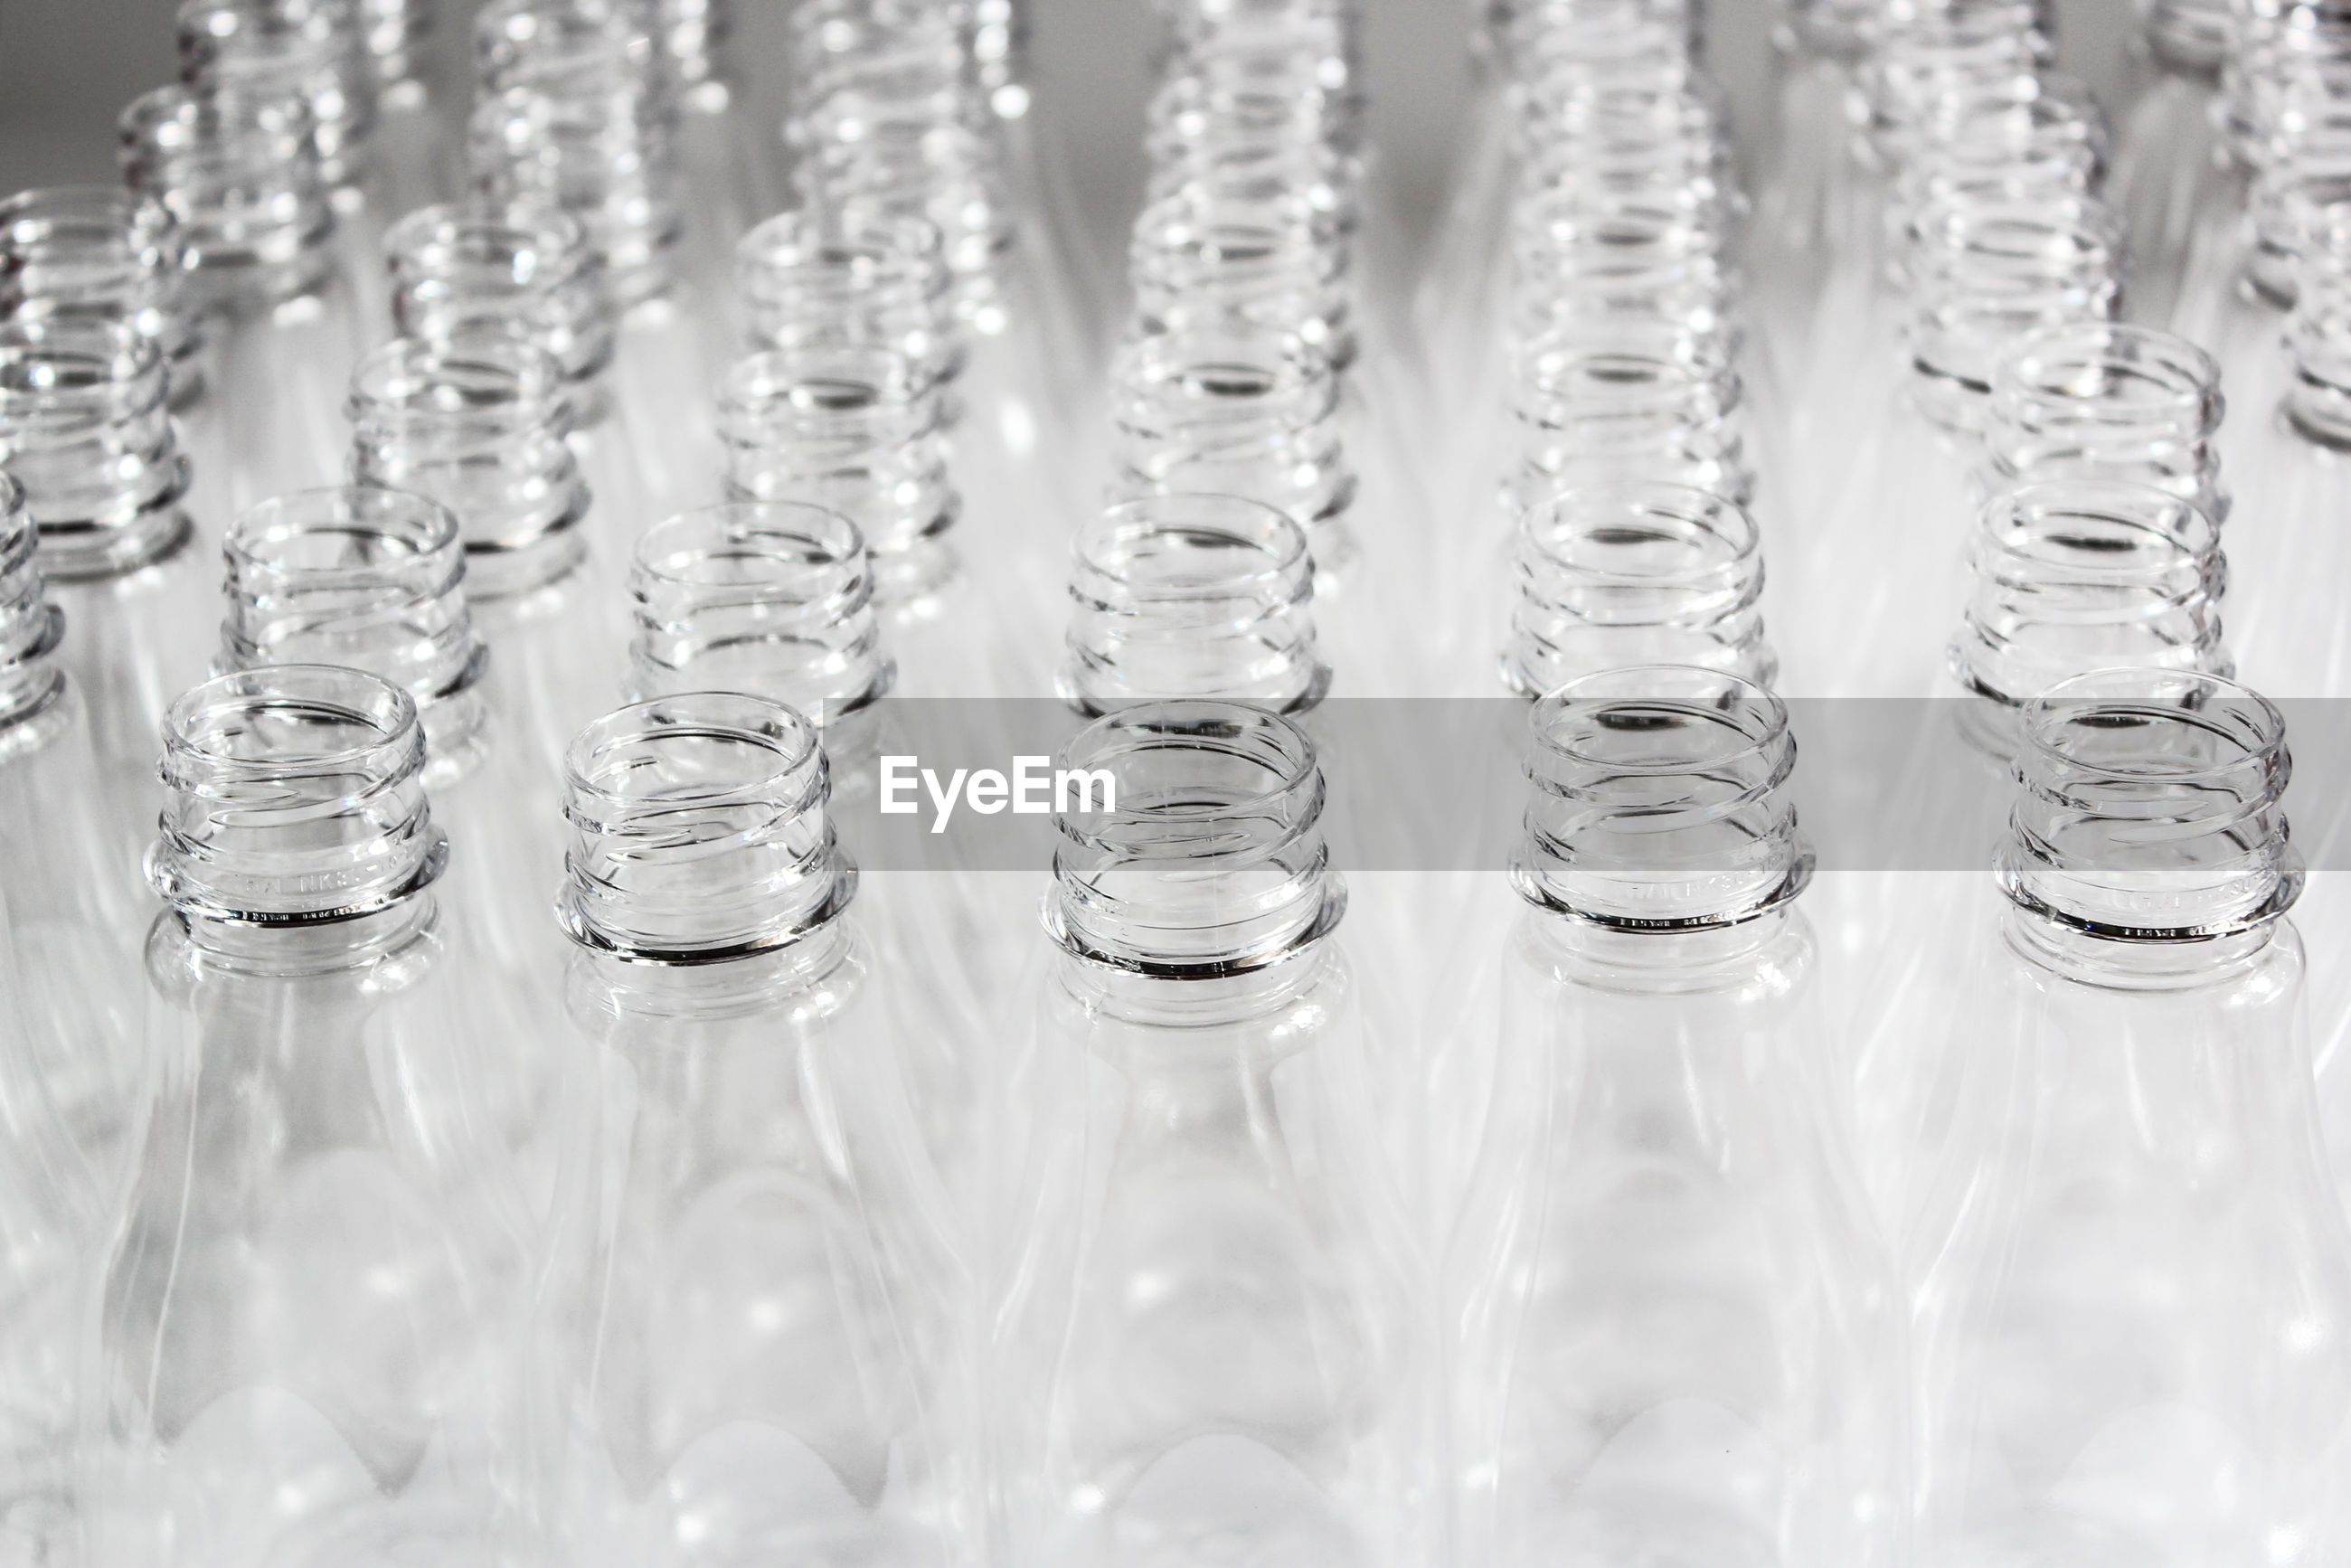 Close-up of empty glass bottles against gray background